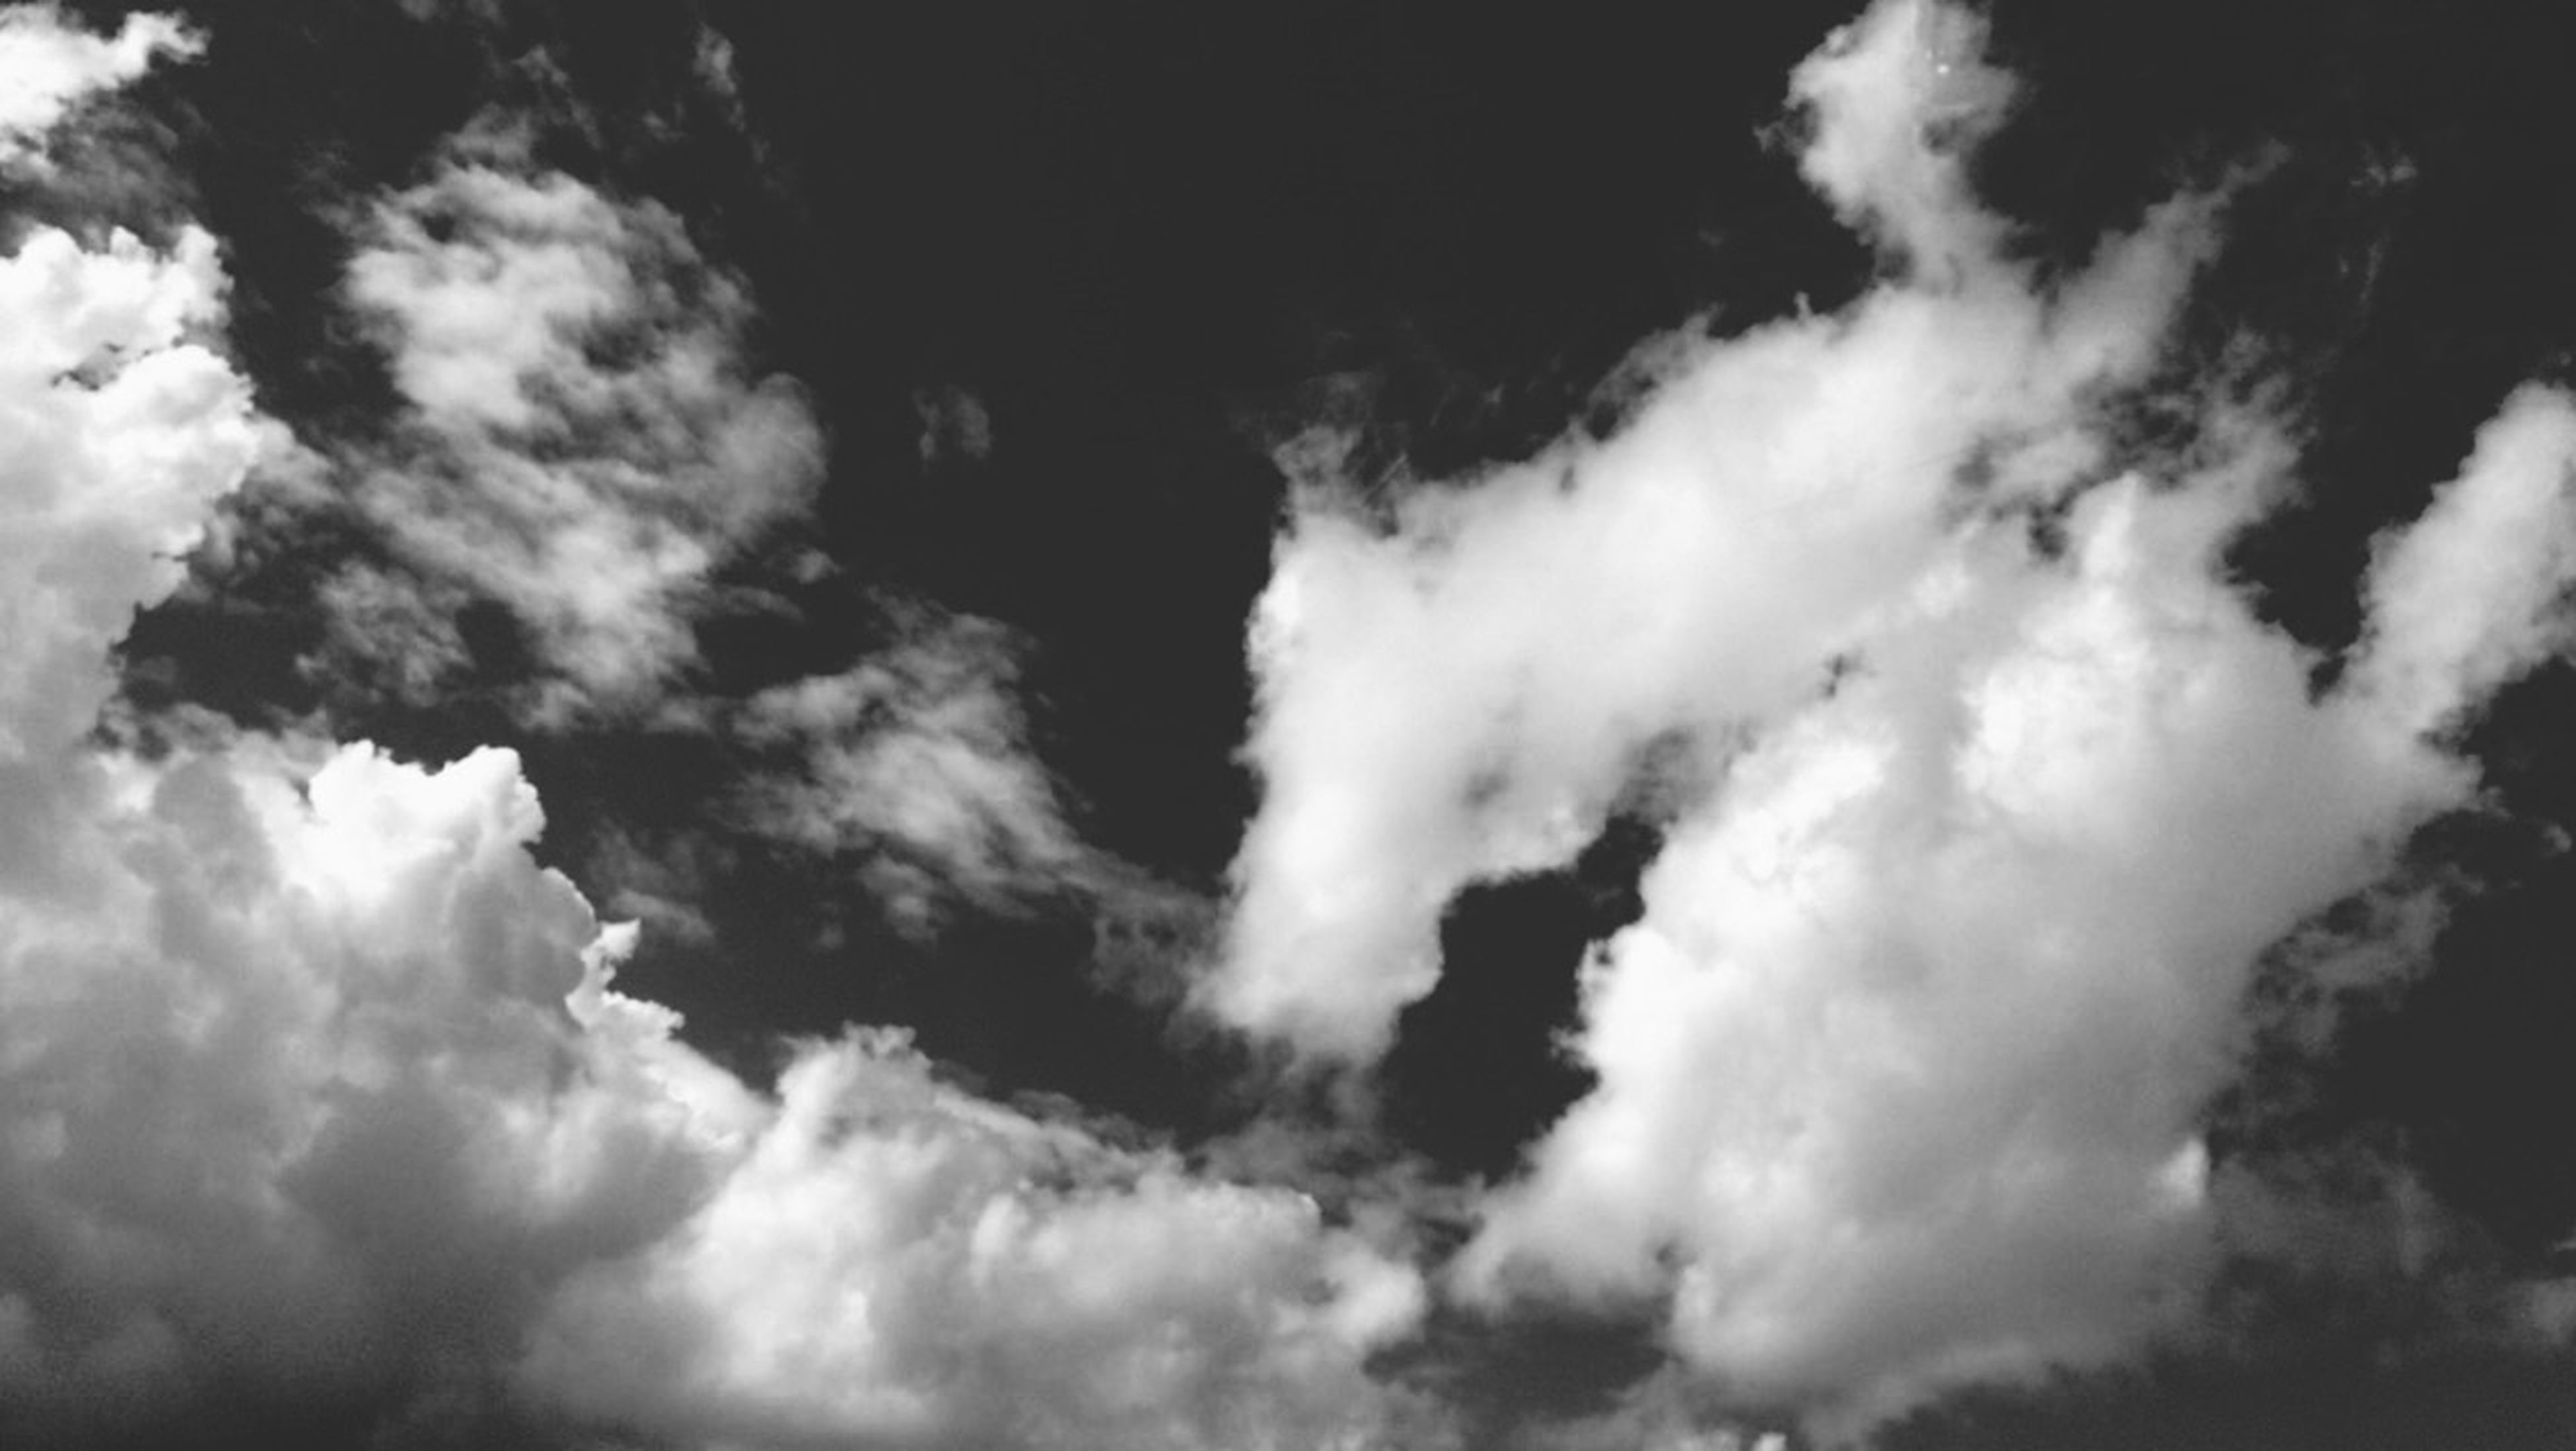 low angle view, sky, cloud - sky, cloudy, beauty in nature, tranquility, sky only, nature, scenics, cloudscape, tranquil scene, cloud, weather, overcast, backgrounds, outdoors, silhouette, idyllic, no people, day